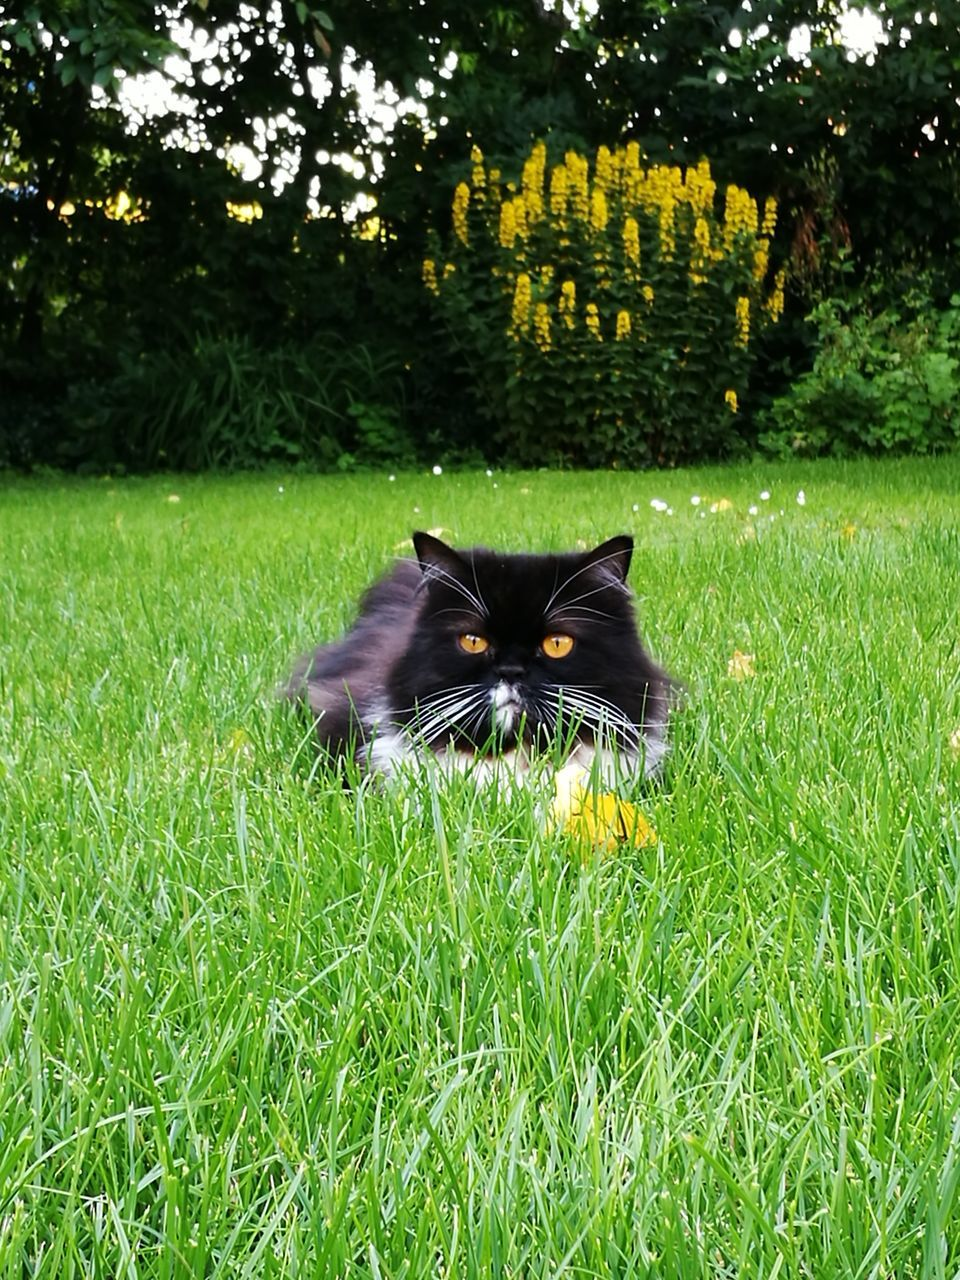 plant, pets, one animal, grass, animal themes, mammal, domestic, cat, animal, domestic animals, feline, domestic cat, looking at camera, vertebrate, portrait, green color, nature, field, no people, land, whisker